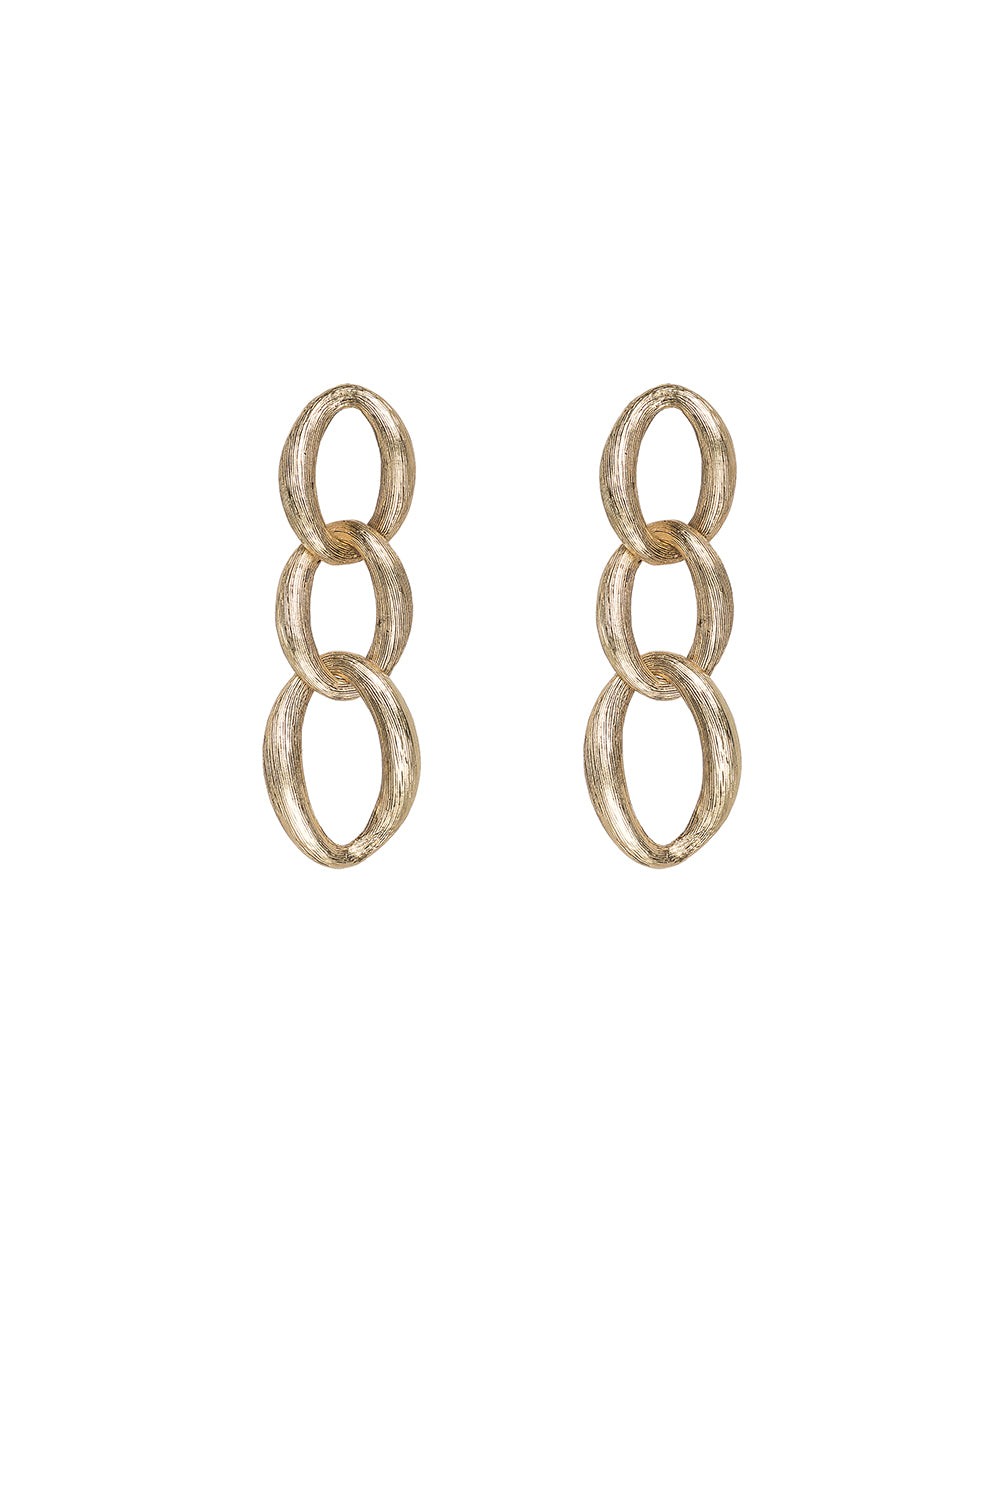 Kitte / Envy Earring / Gold